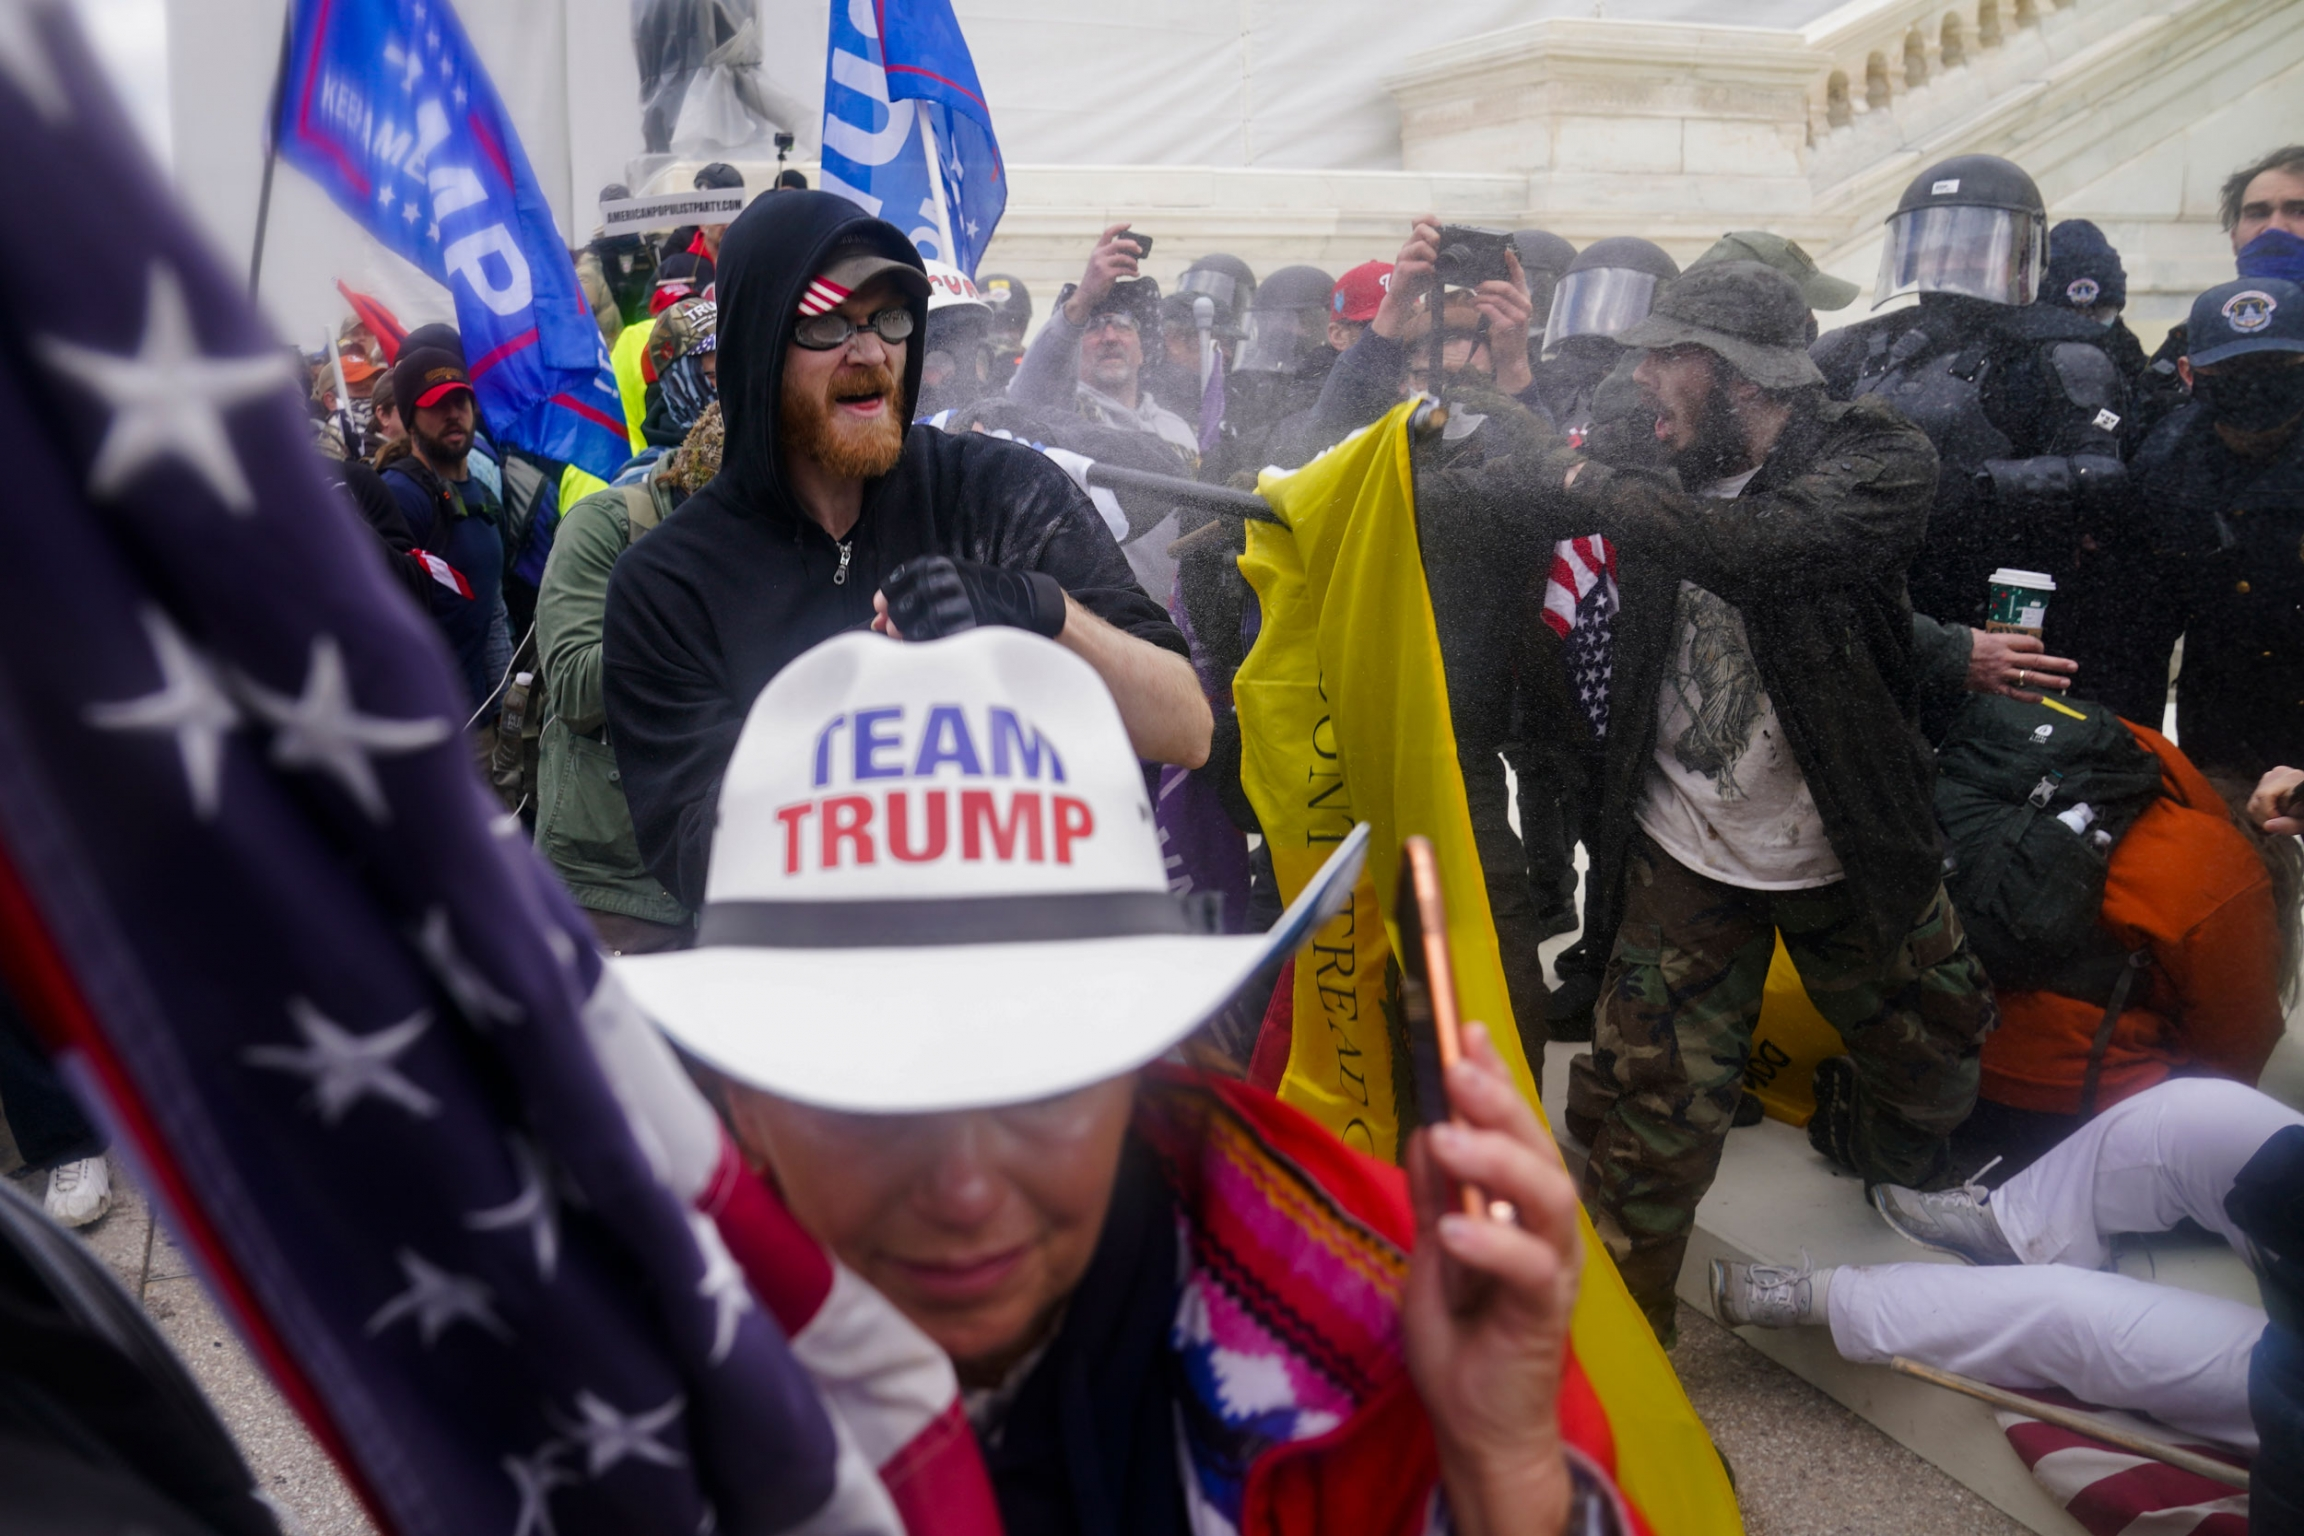 Several people wearing pro-Trump paraphernalia are shown outside of the US Capitol building with police wearing helmet and face guards shown opposite.